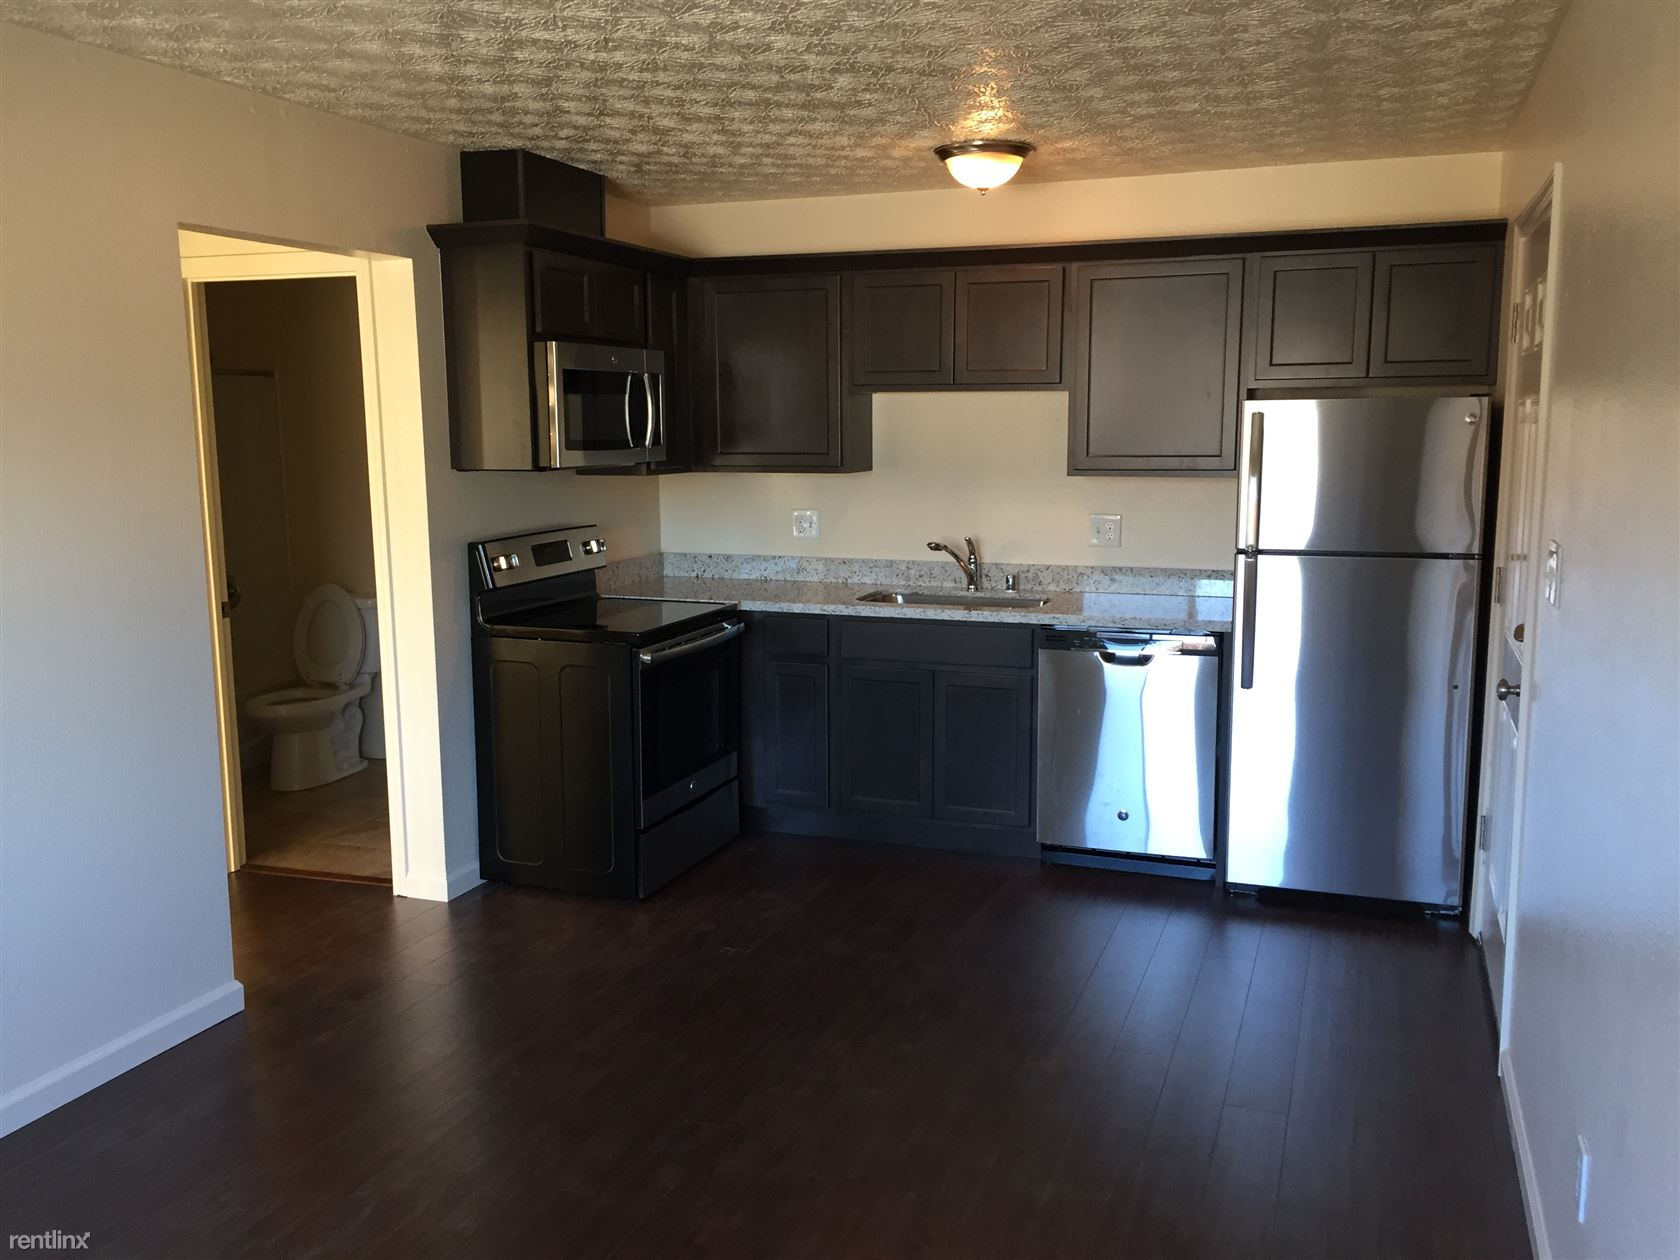 8301 E 3rd Ave - 1000USD / month